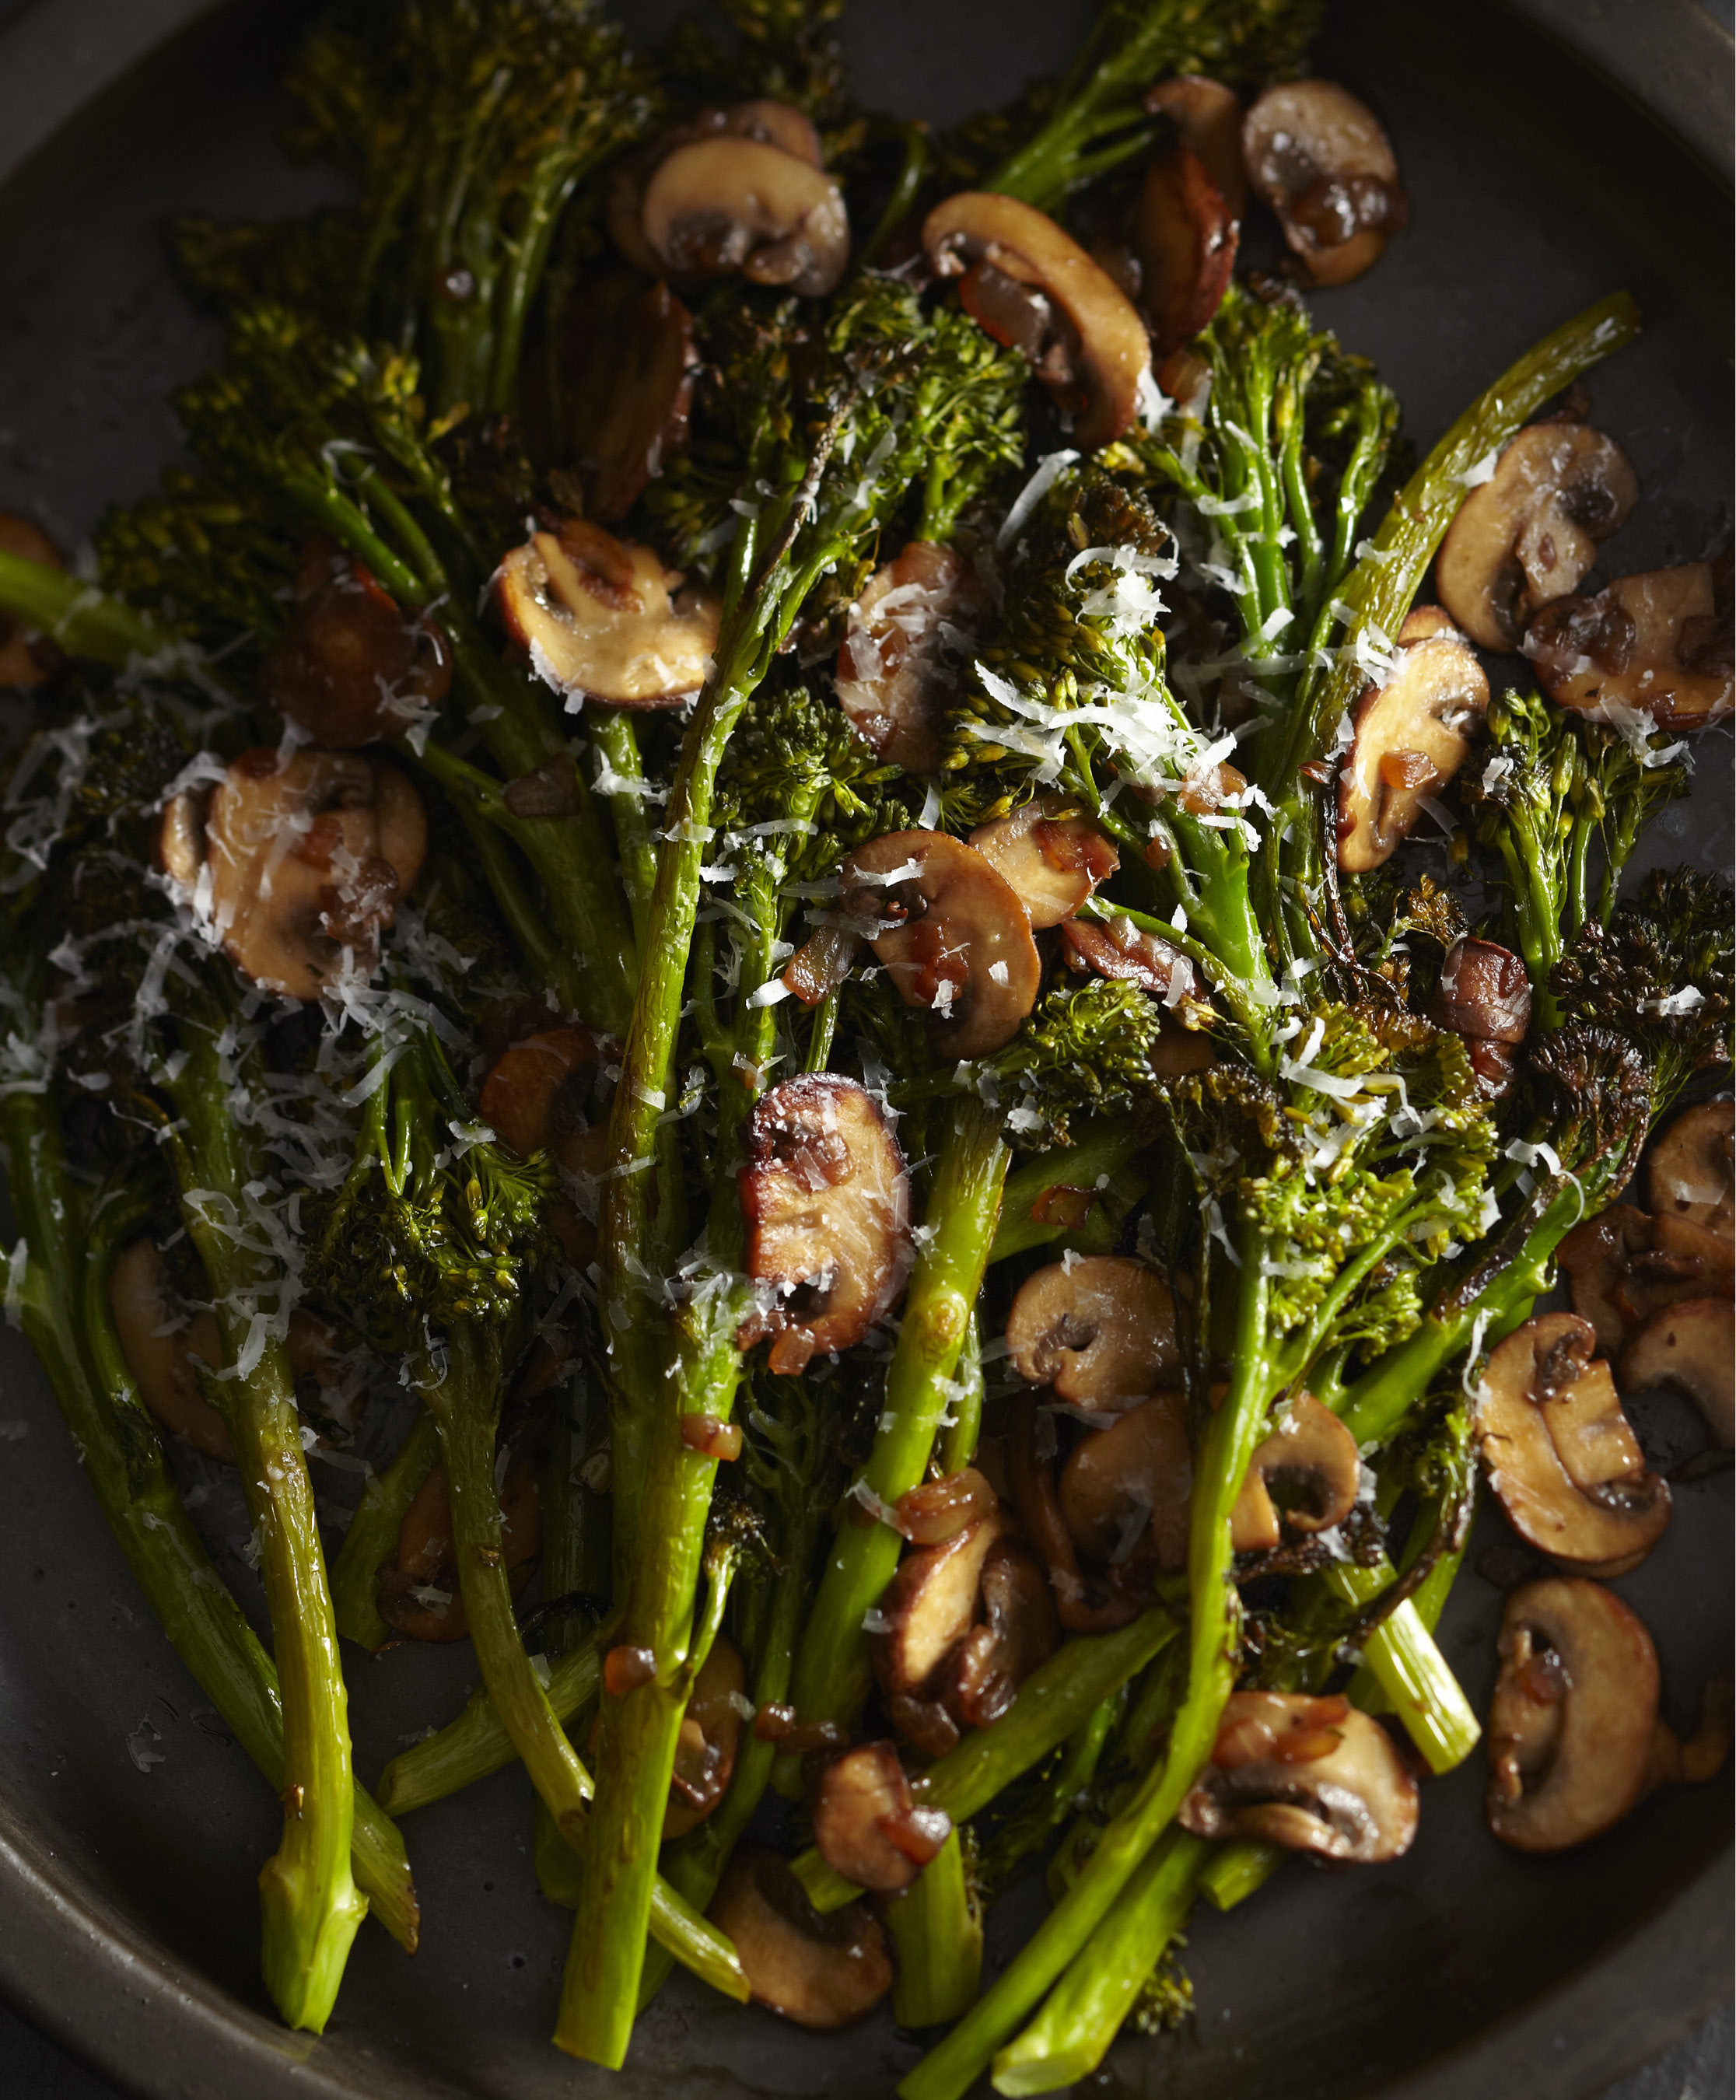 Roasted-Broccolini-with-Winey-Mushrooms. | Photo by Sang An.